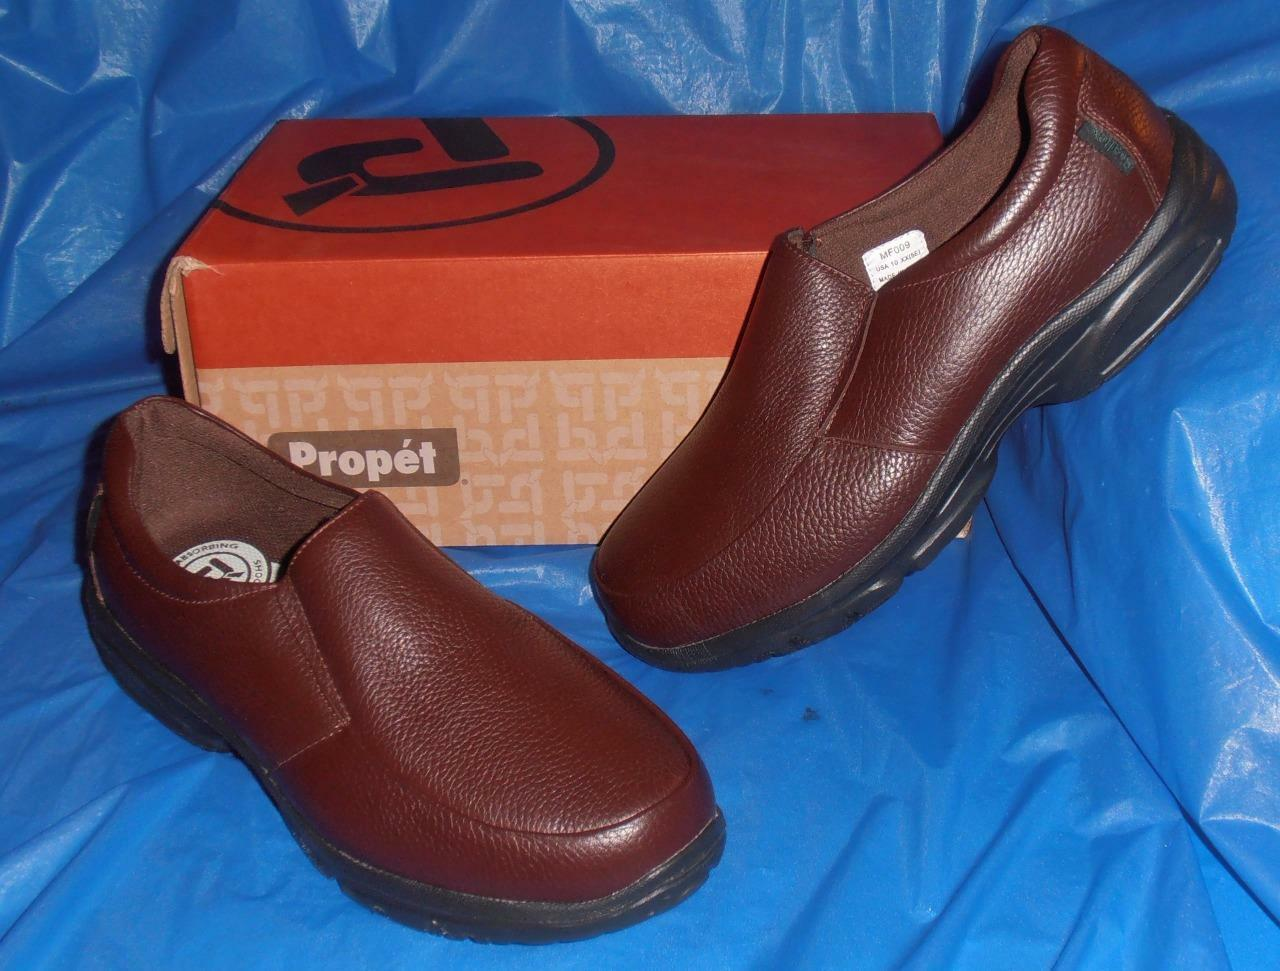 Propet, Uomo Dark Brown Casual or Dress Slip-on,  Comfortable, 10  XX ( EEEEE )